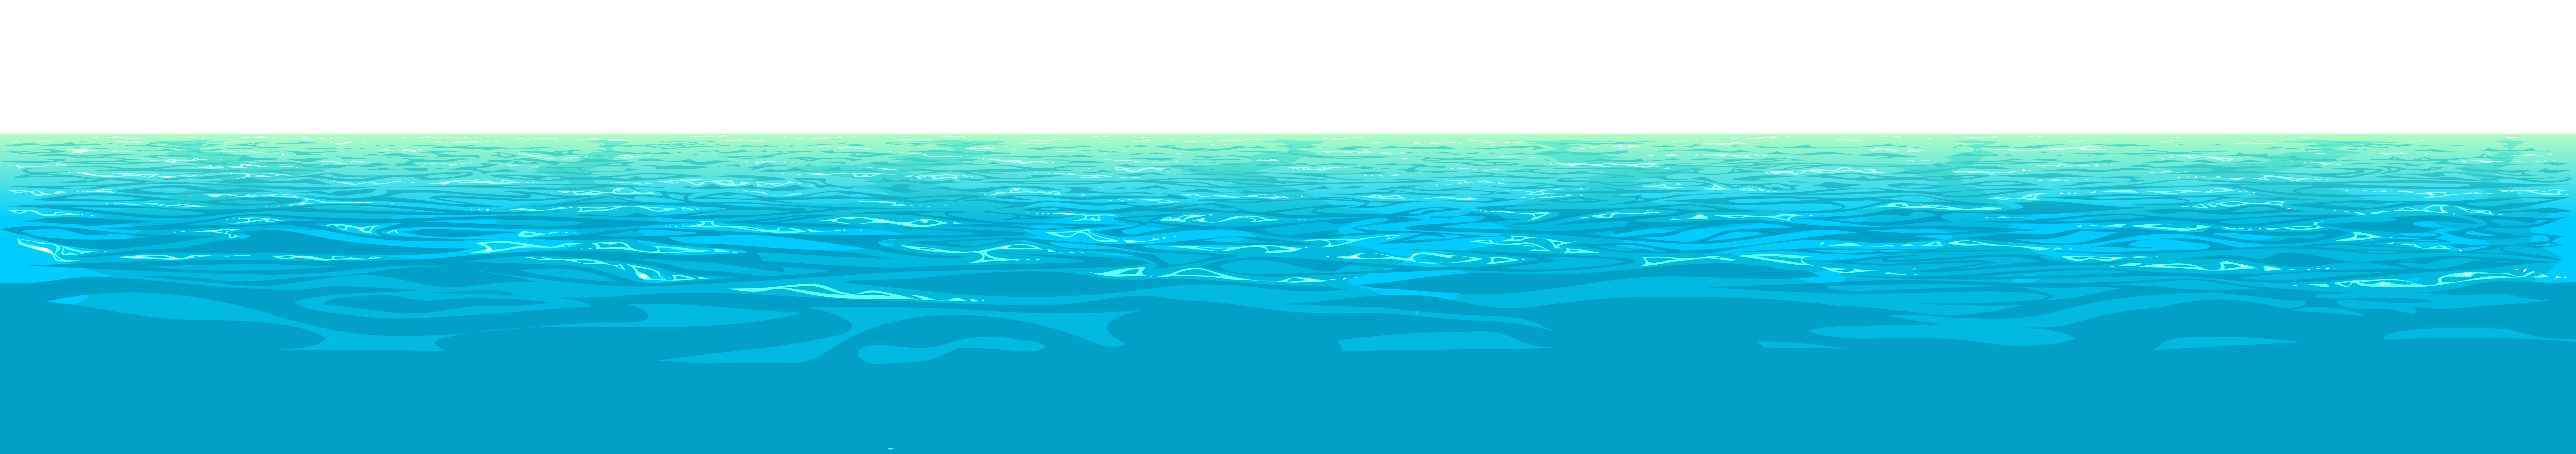 Ocean png. Sea hd transparent images